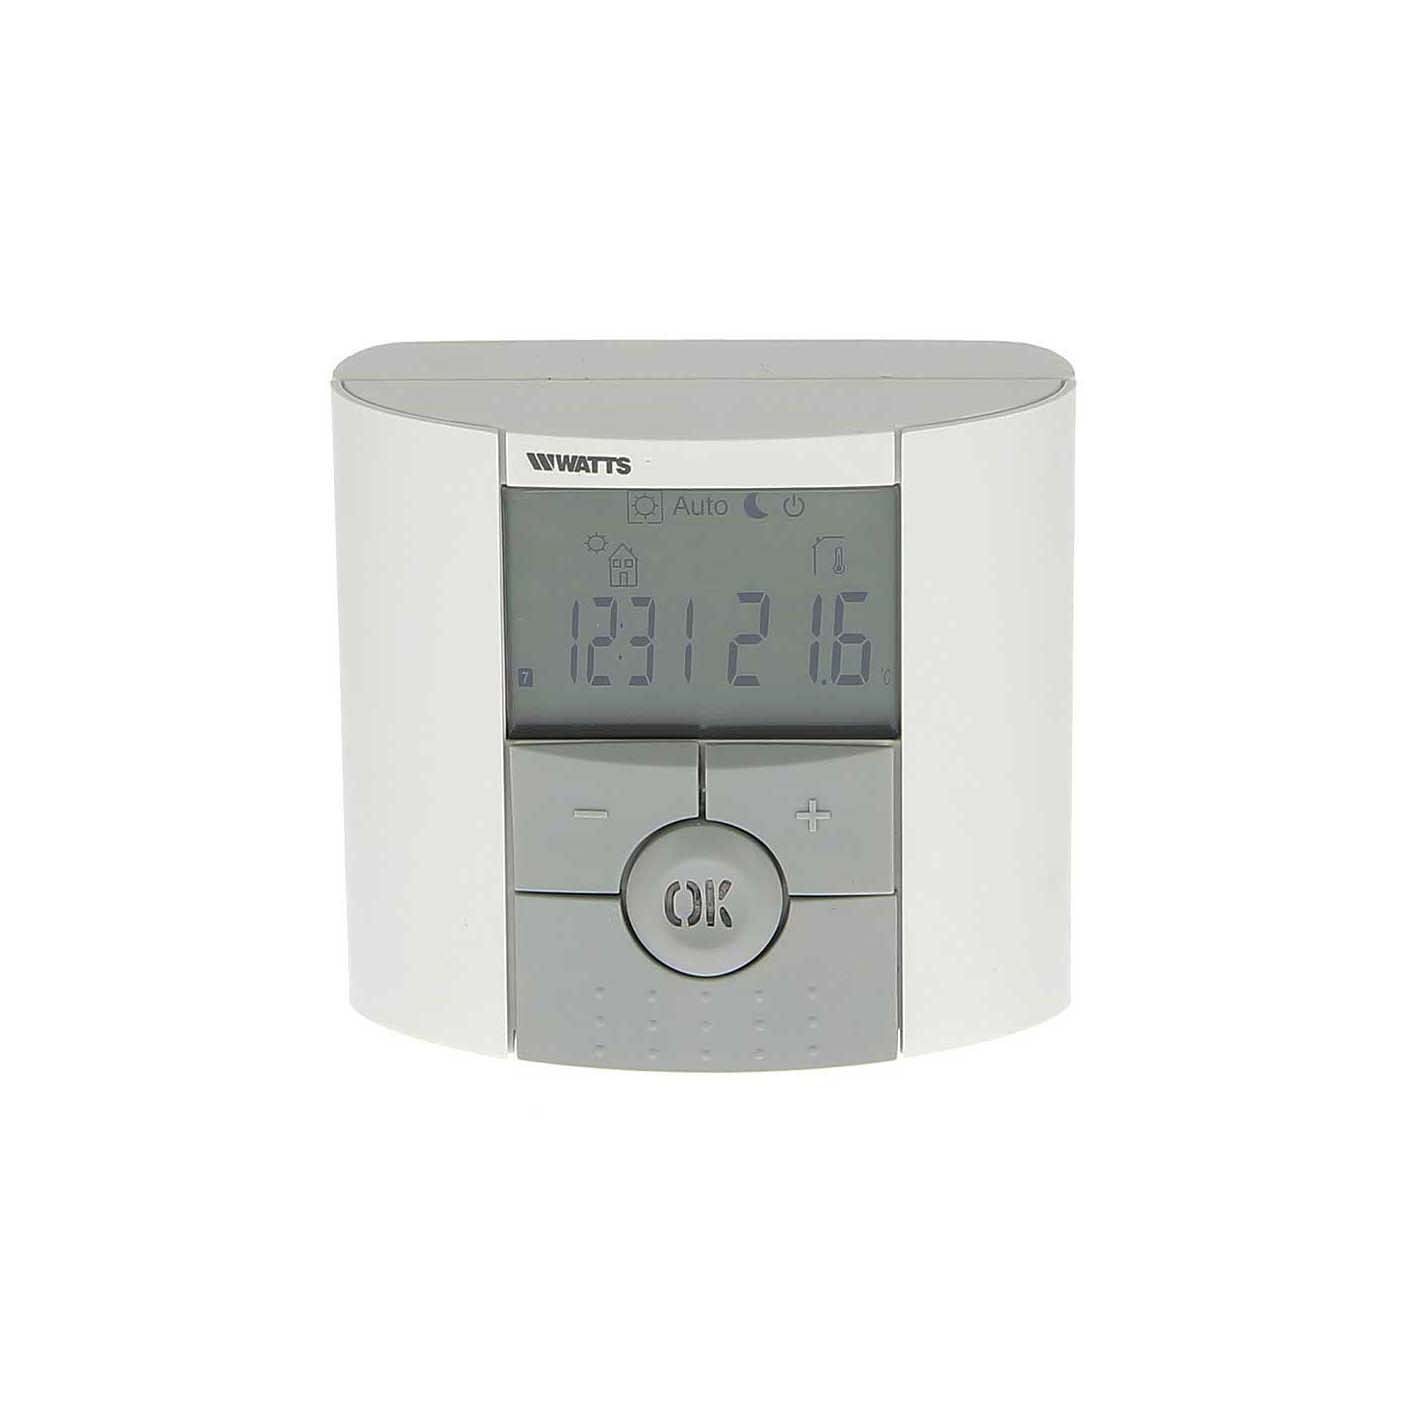 Programmable Thermostat With Floor Sensor Compatability Btdp